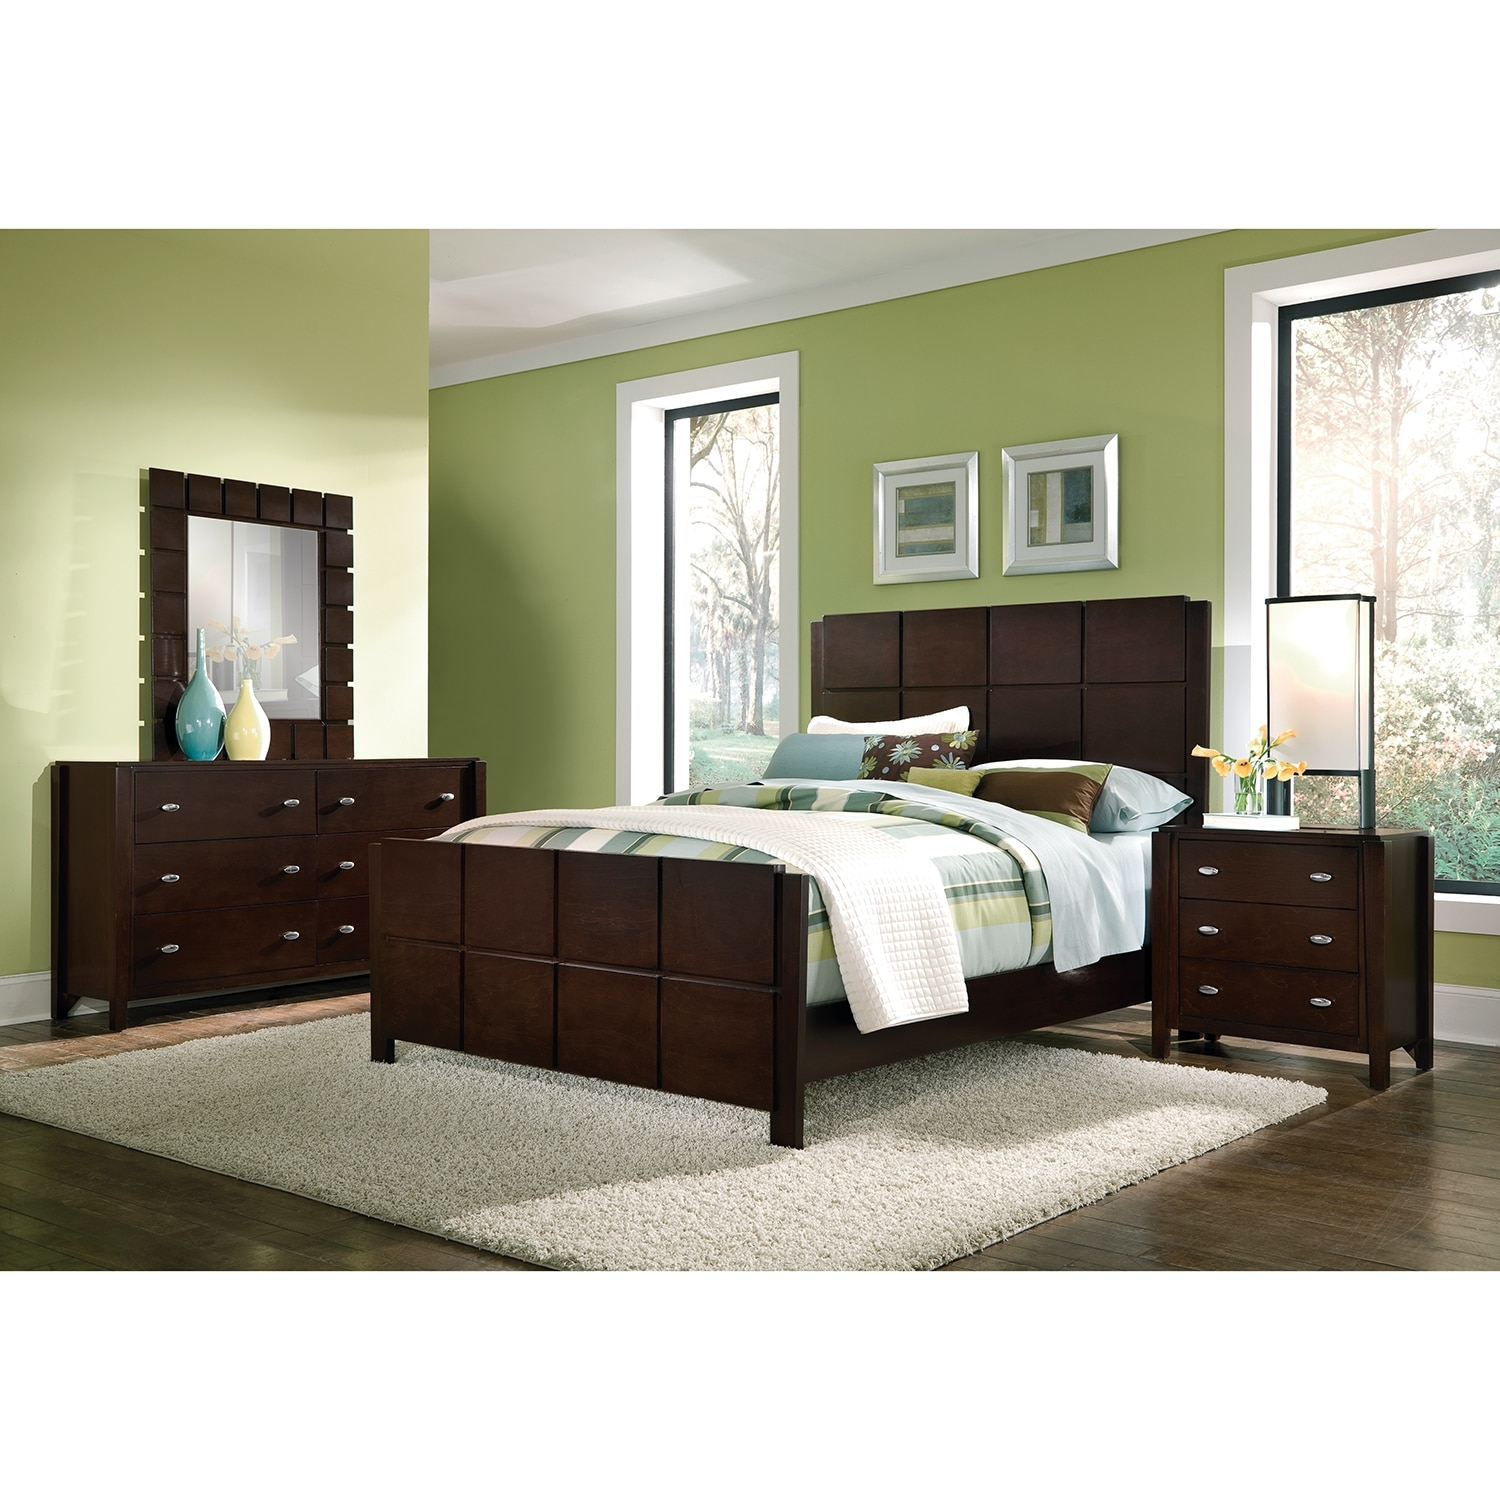 Mosaic 6 pc queen bedroom value city furniture - Queen bedroom sets ...